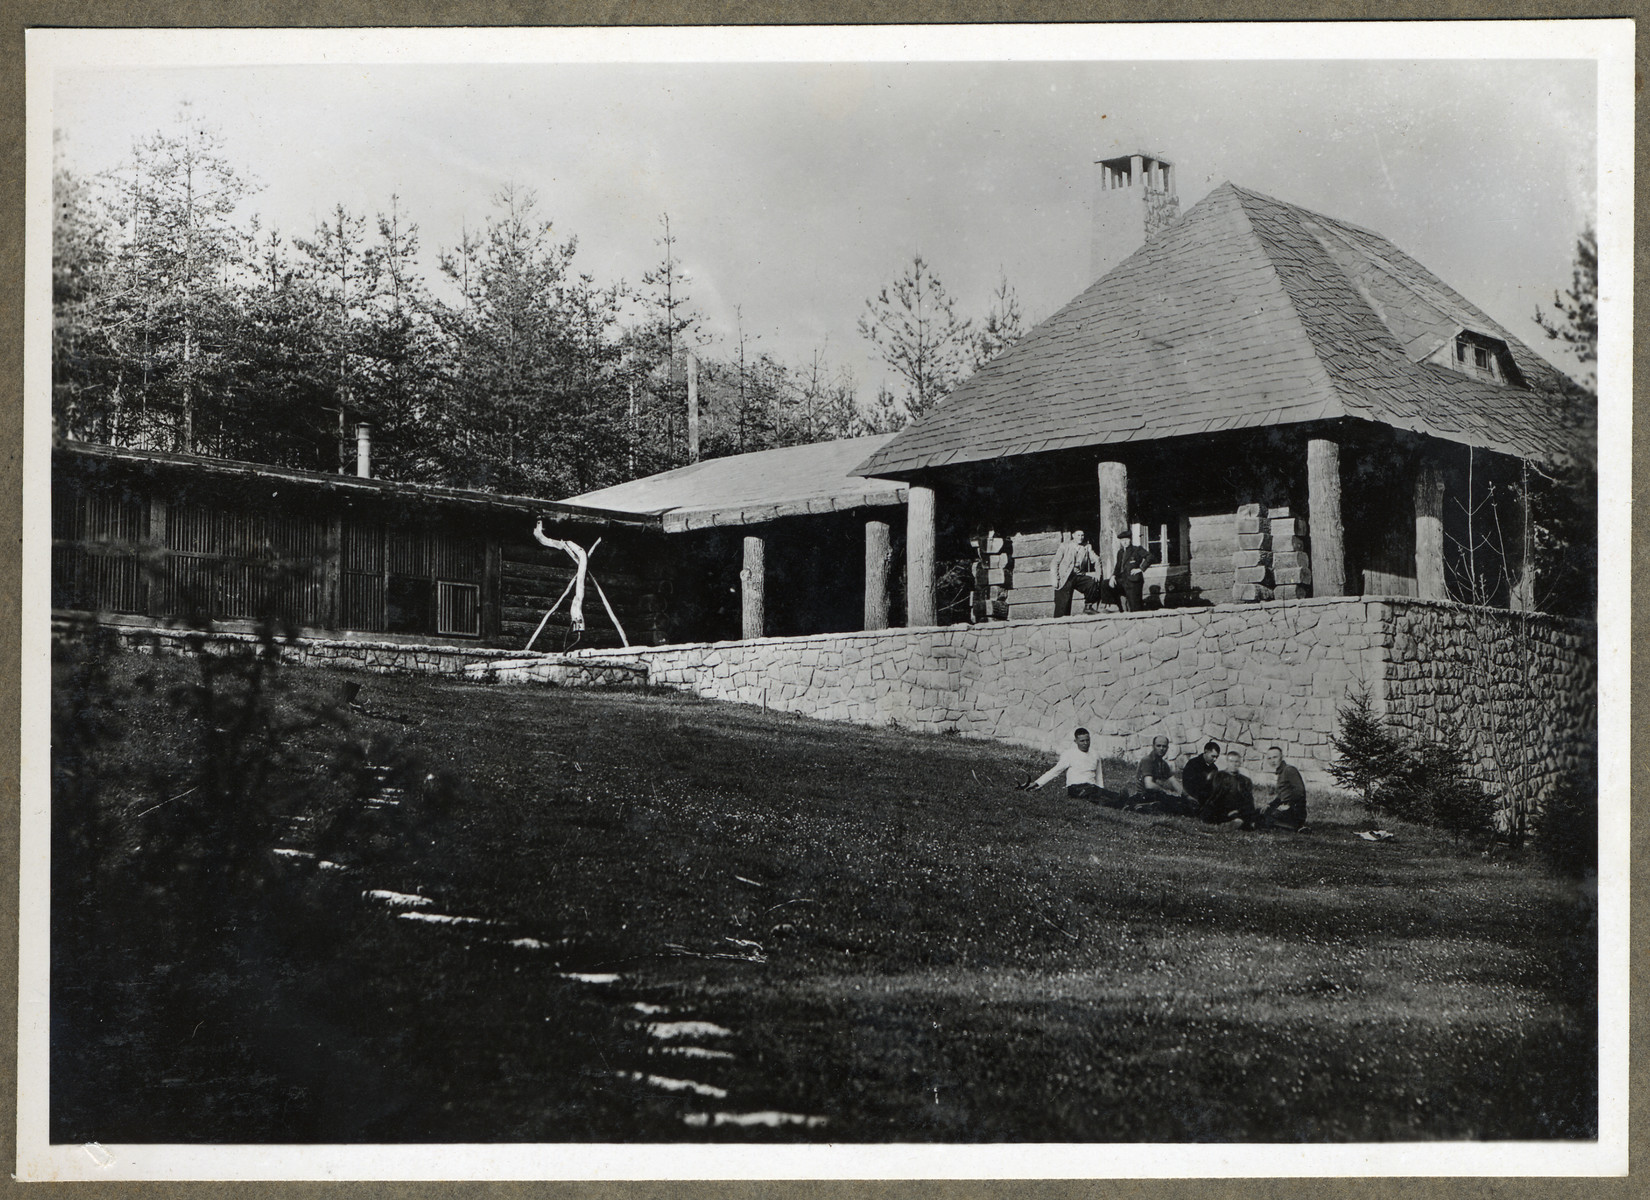 Survivors mingle on the porch and yard of a building [possibly abandoned SS housing] following liberation.